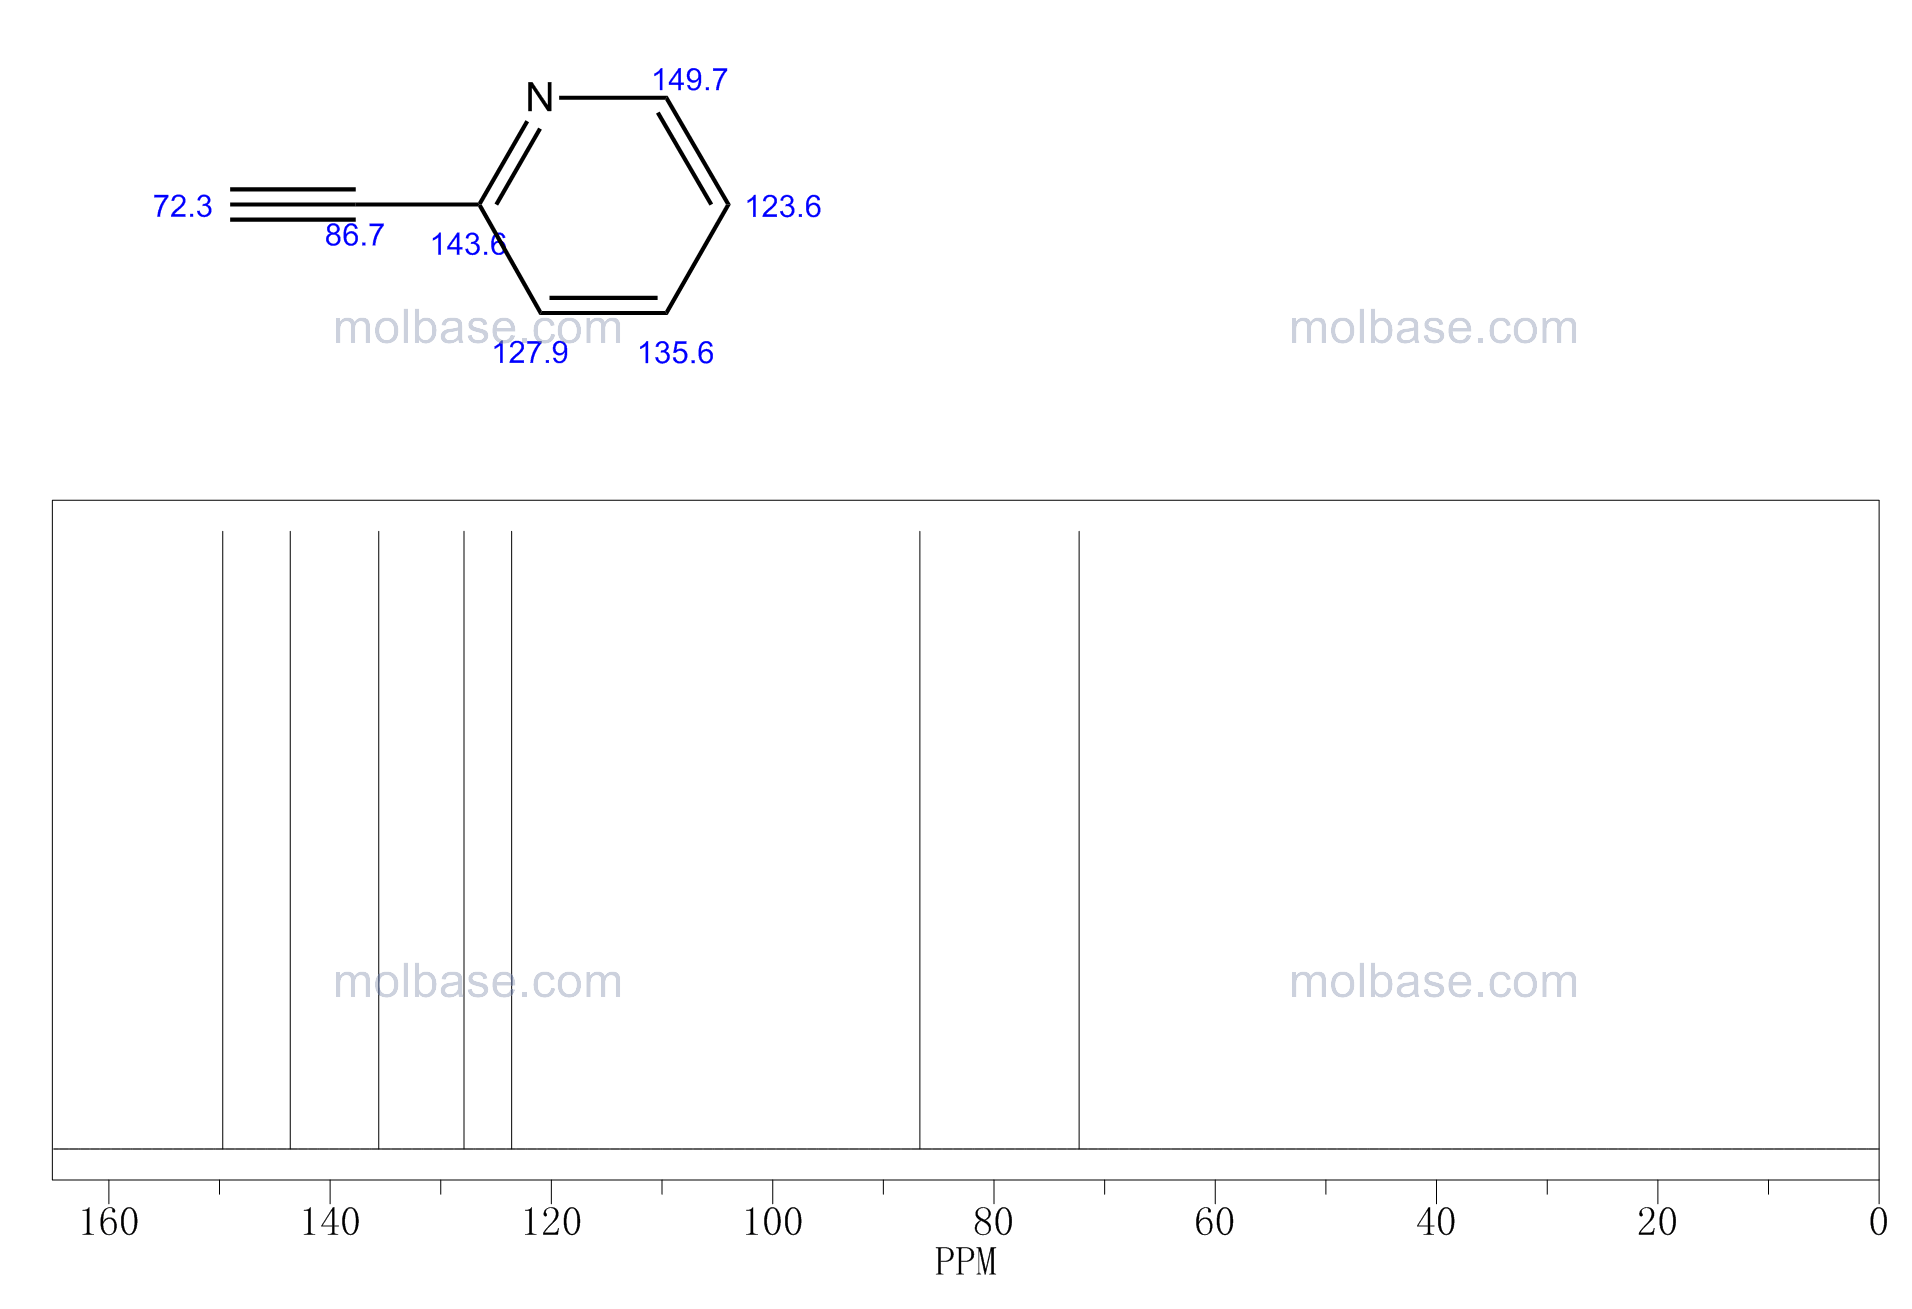 2-Ethynylpyridine NMR spectra analysis, Chemical CAS NO. 1945-84-2 NMR spectral analysis, 2-Ethynylpyridine C-NMR spectrum